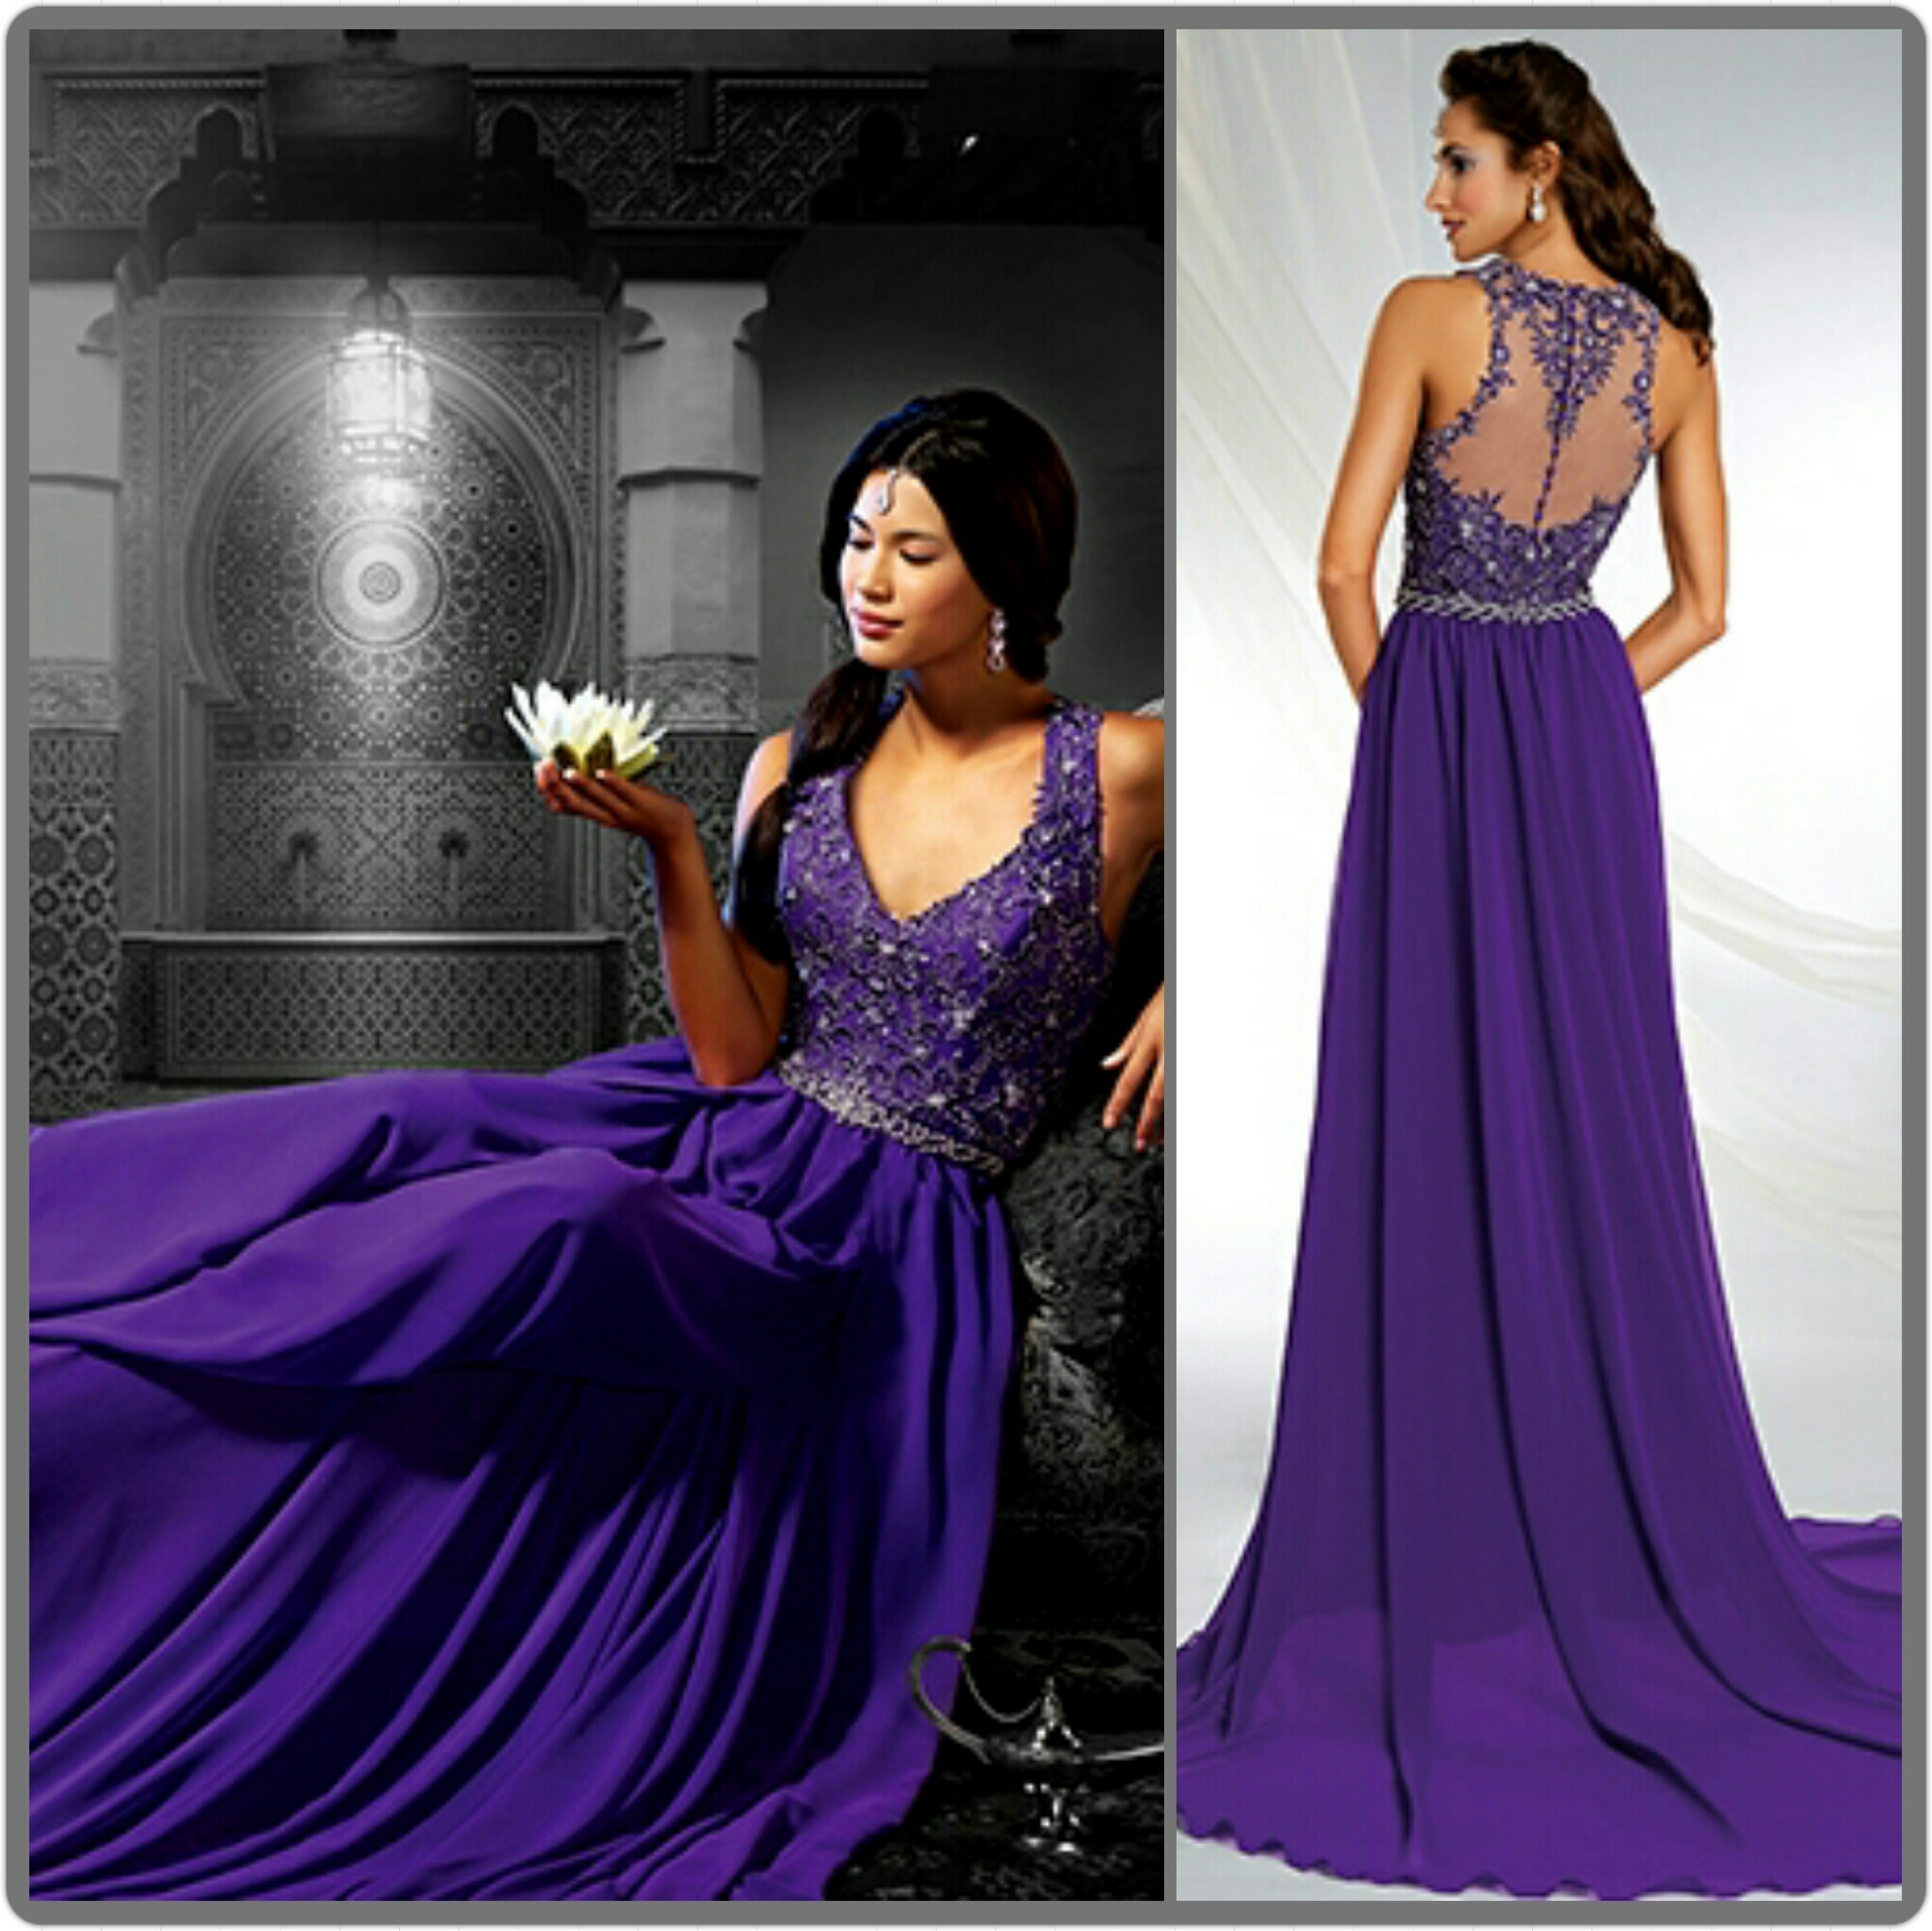 purple dresses for weddings 20 gorgeous wedding gowns in shades of purple tagweddings 6890